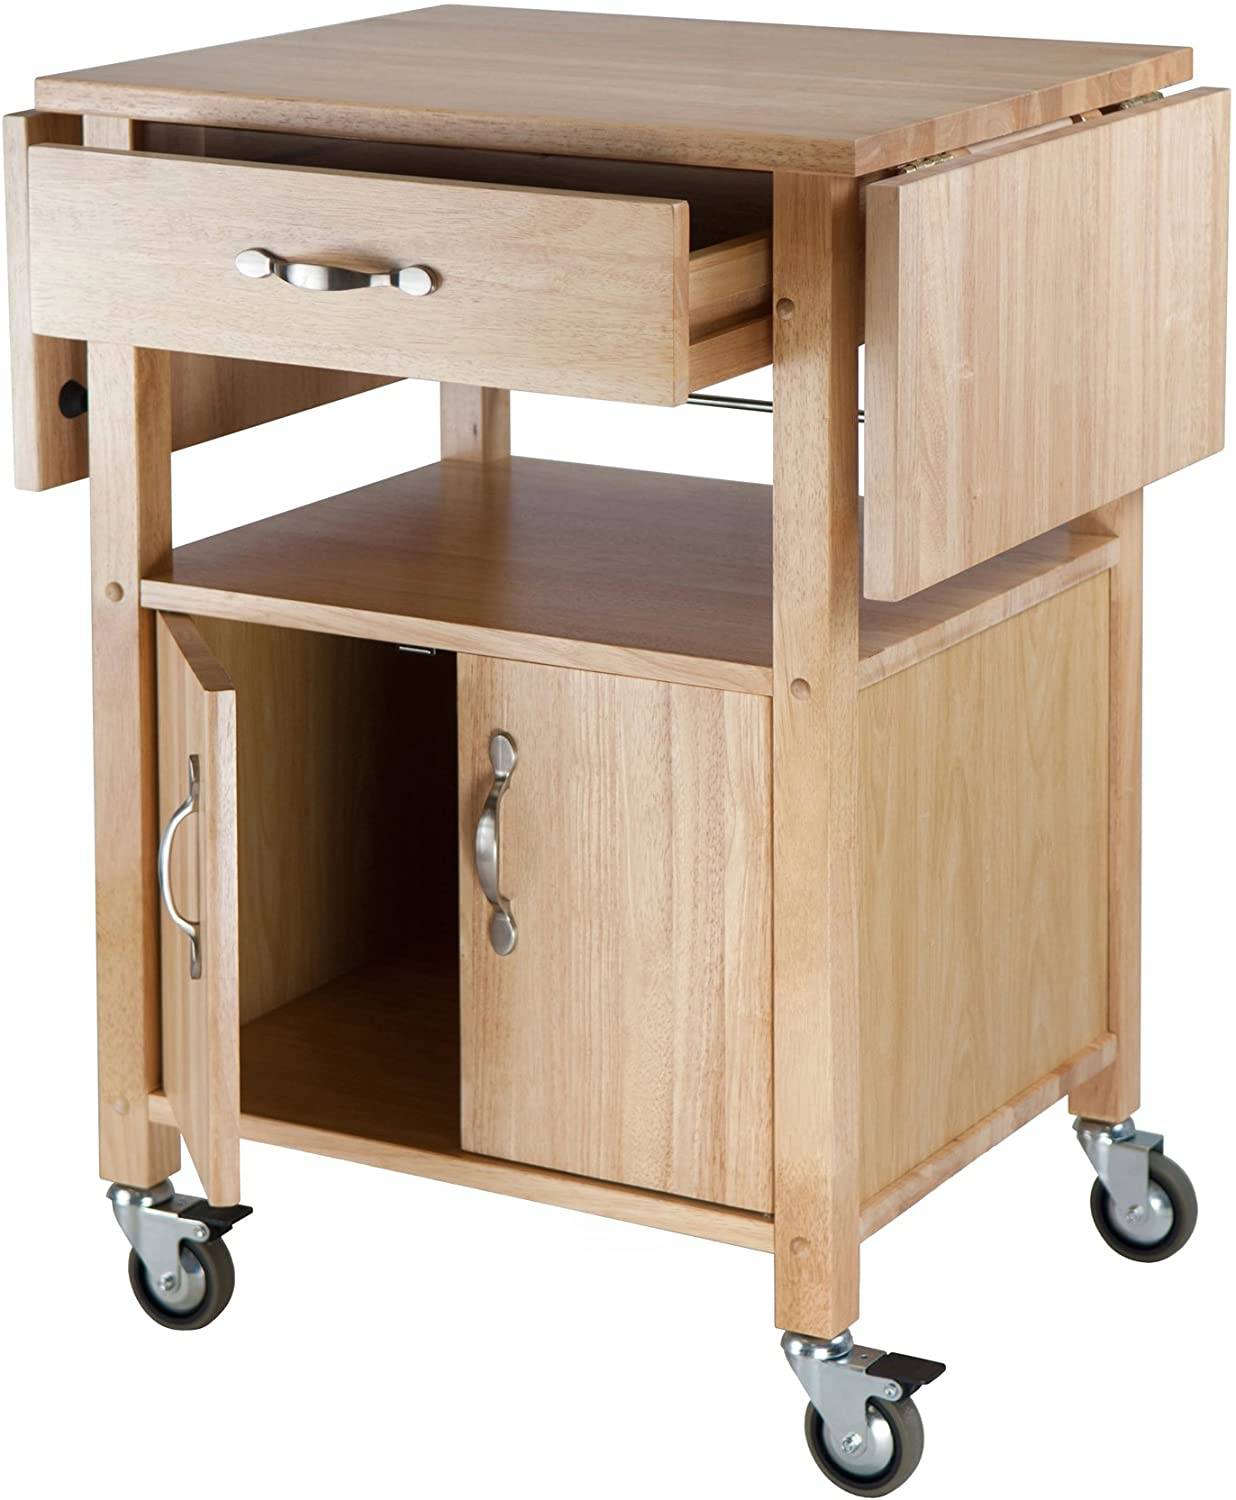 Winsome Drop-Leaf Wooden Kitchen Cart